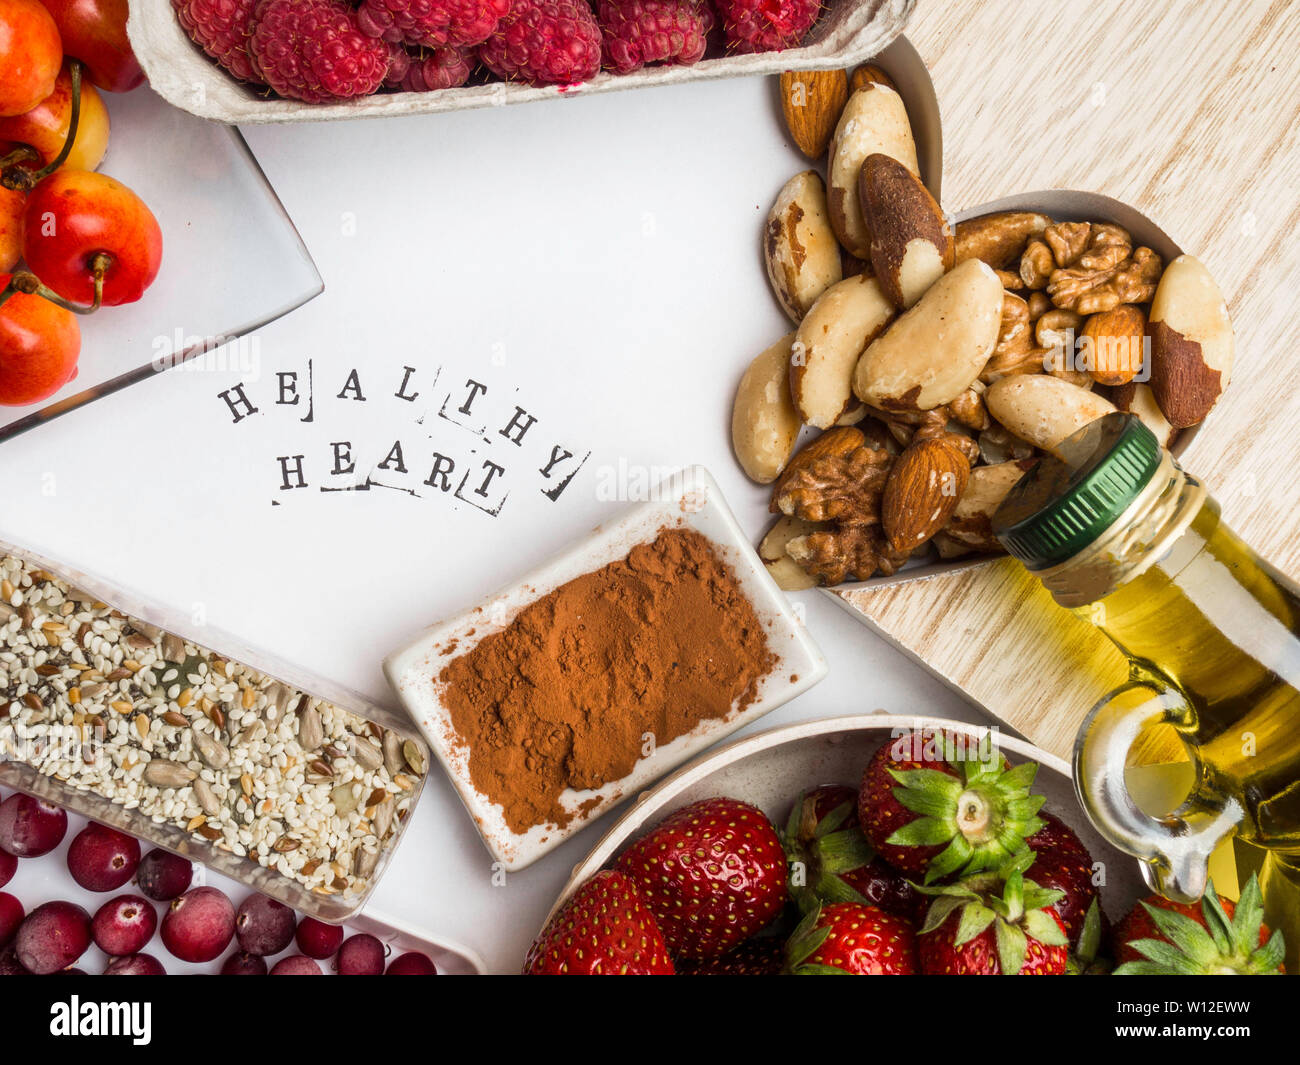 Super food to slow the ageing process concept including High in antioxidants, anthocyanins, dietary fibre & vitamins, healthy food food with inscripti - Stock Image